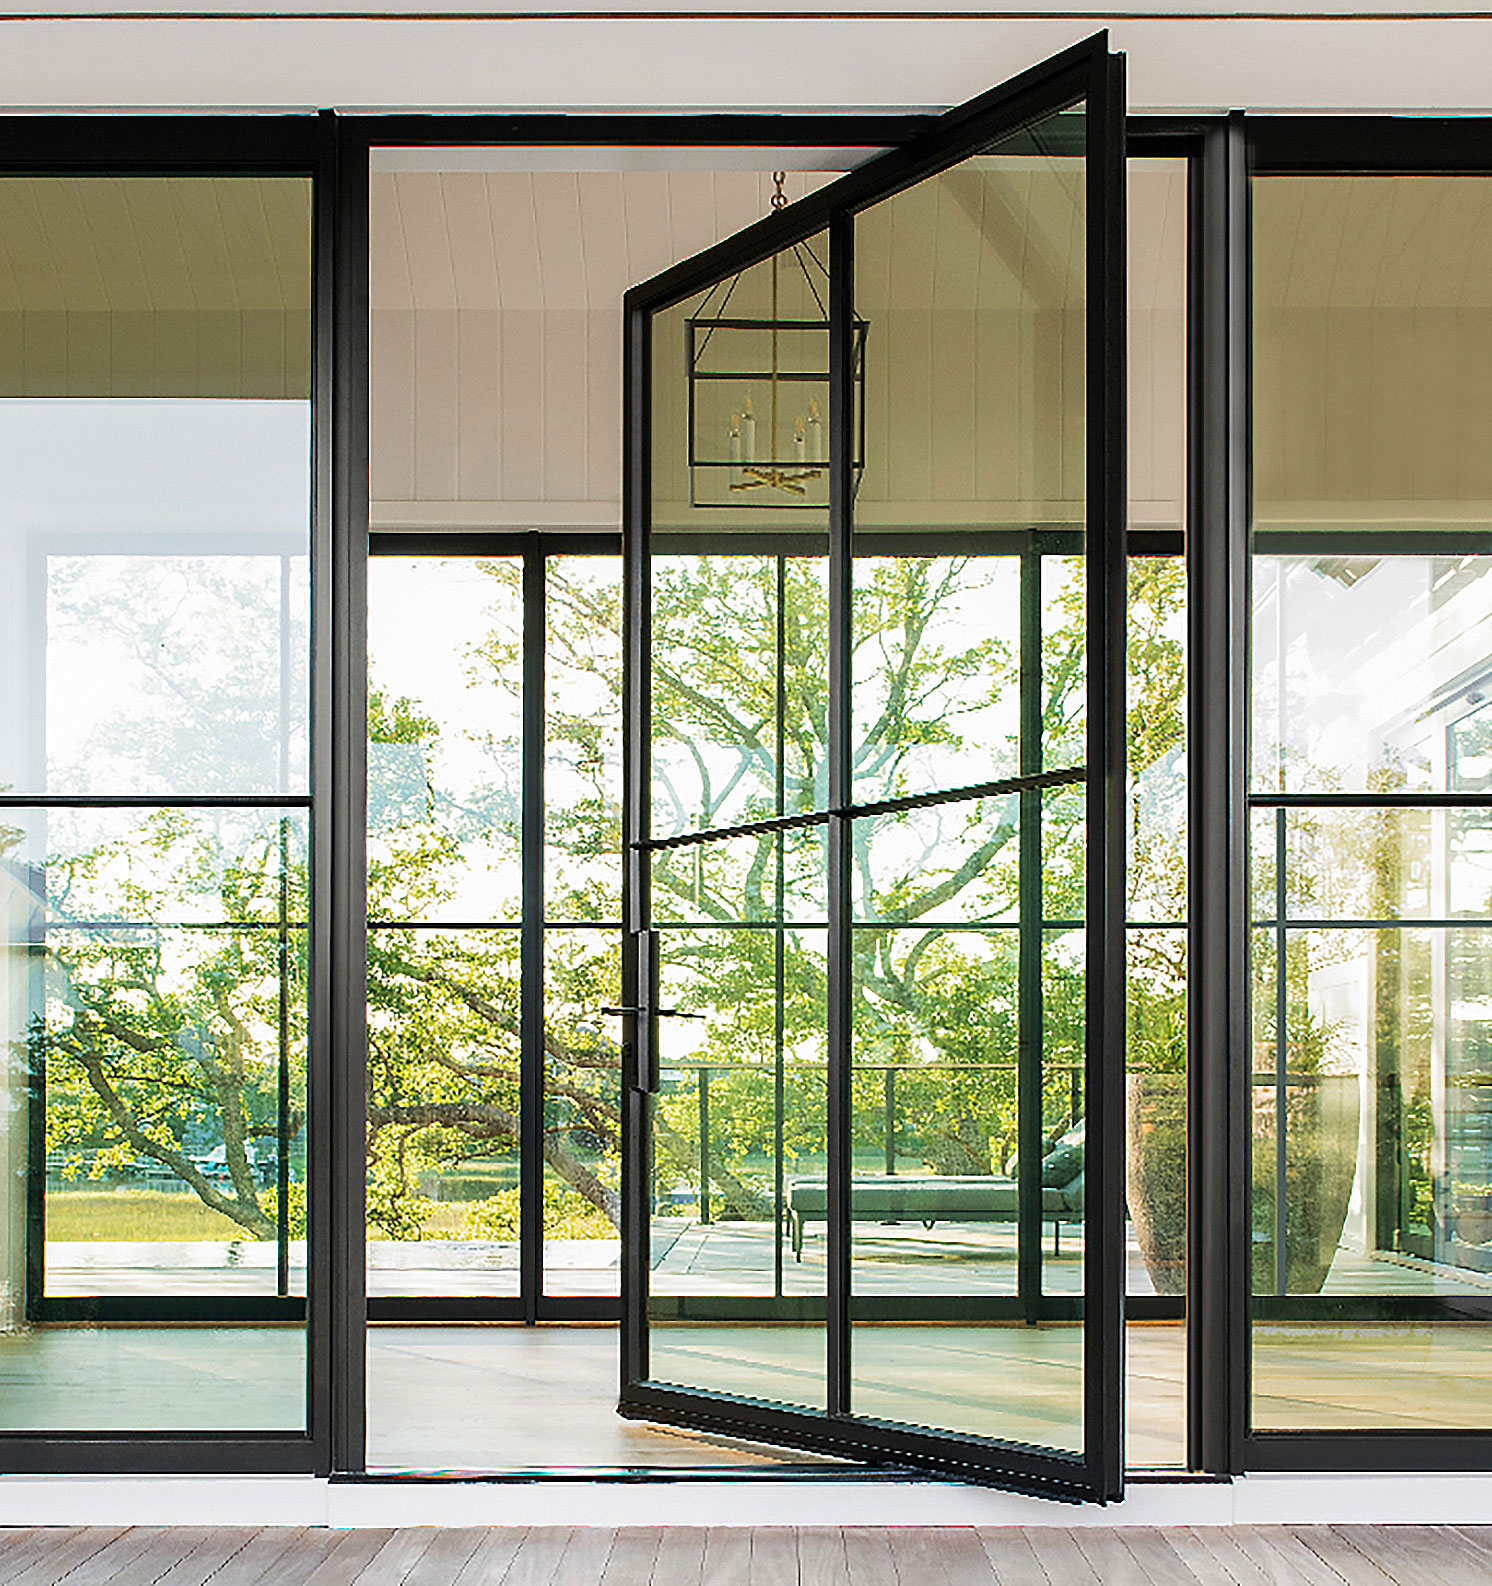 A glass entry door from The Folding Door Store opening into a foyer.